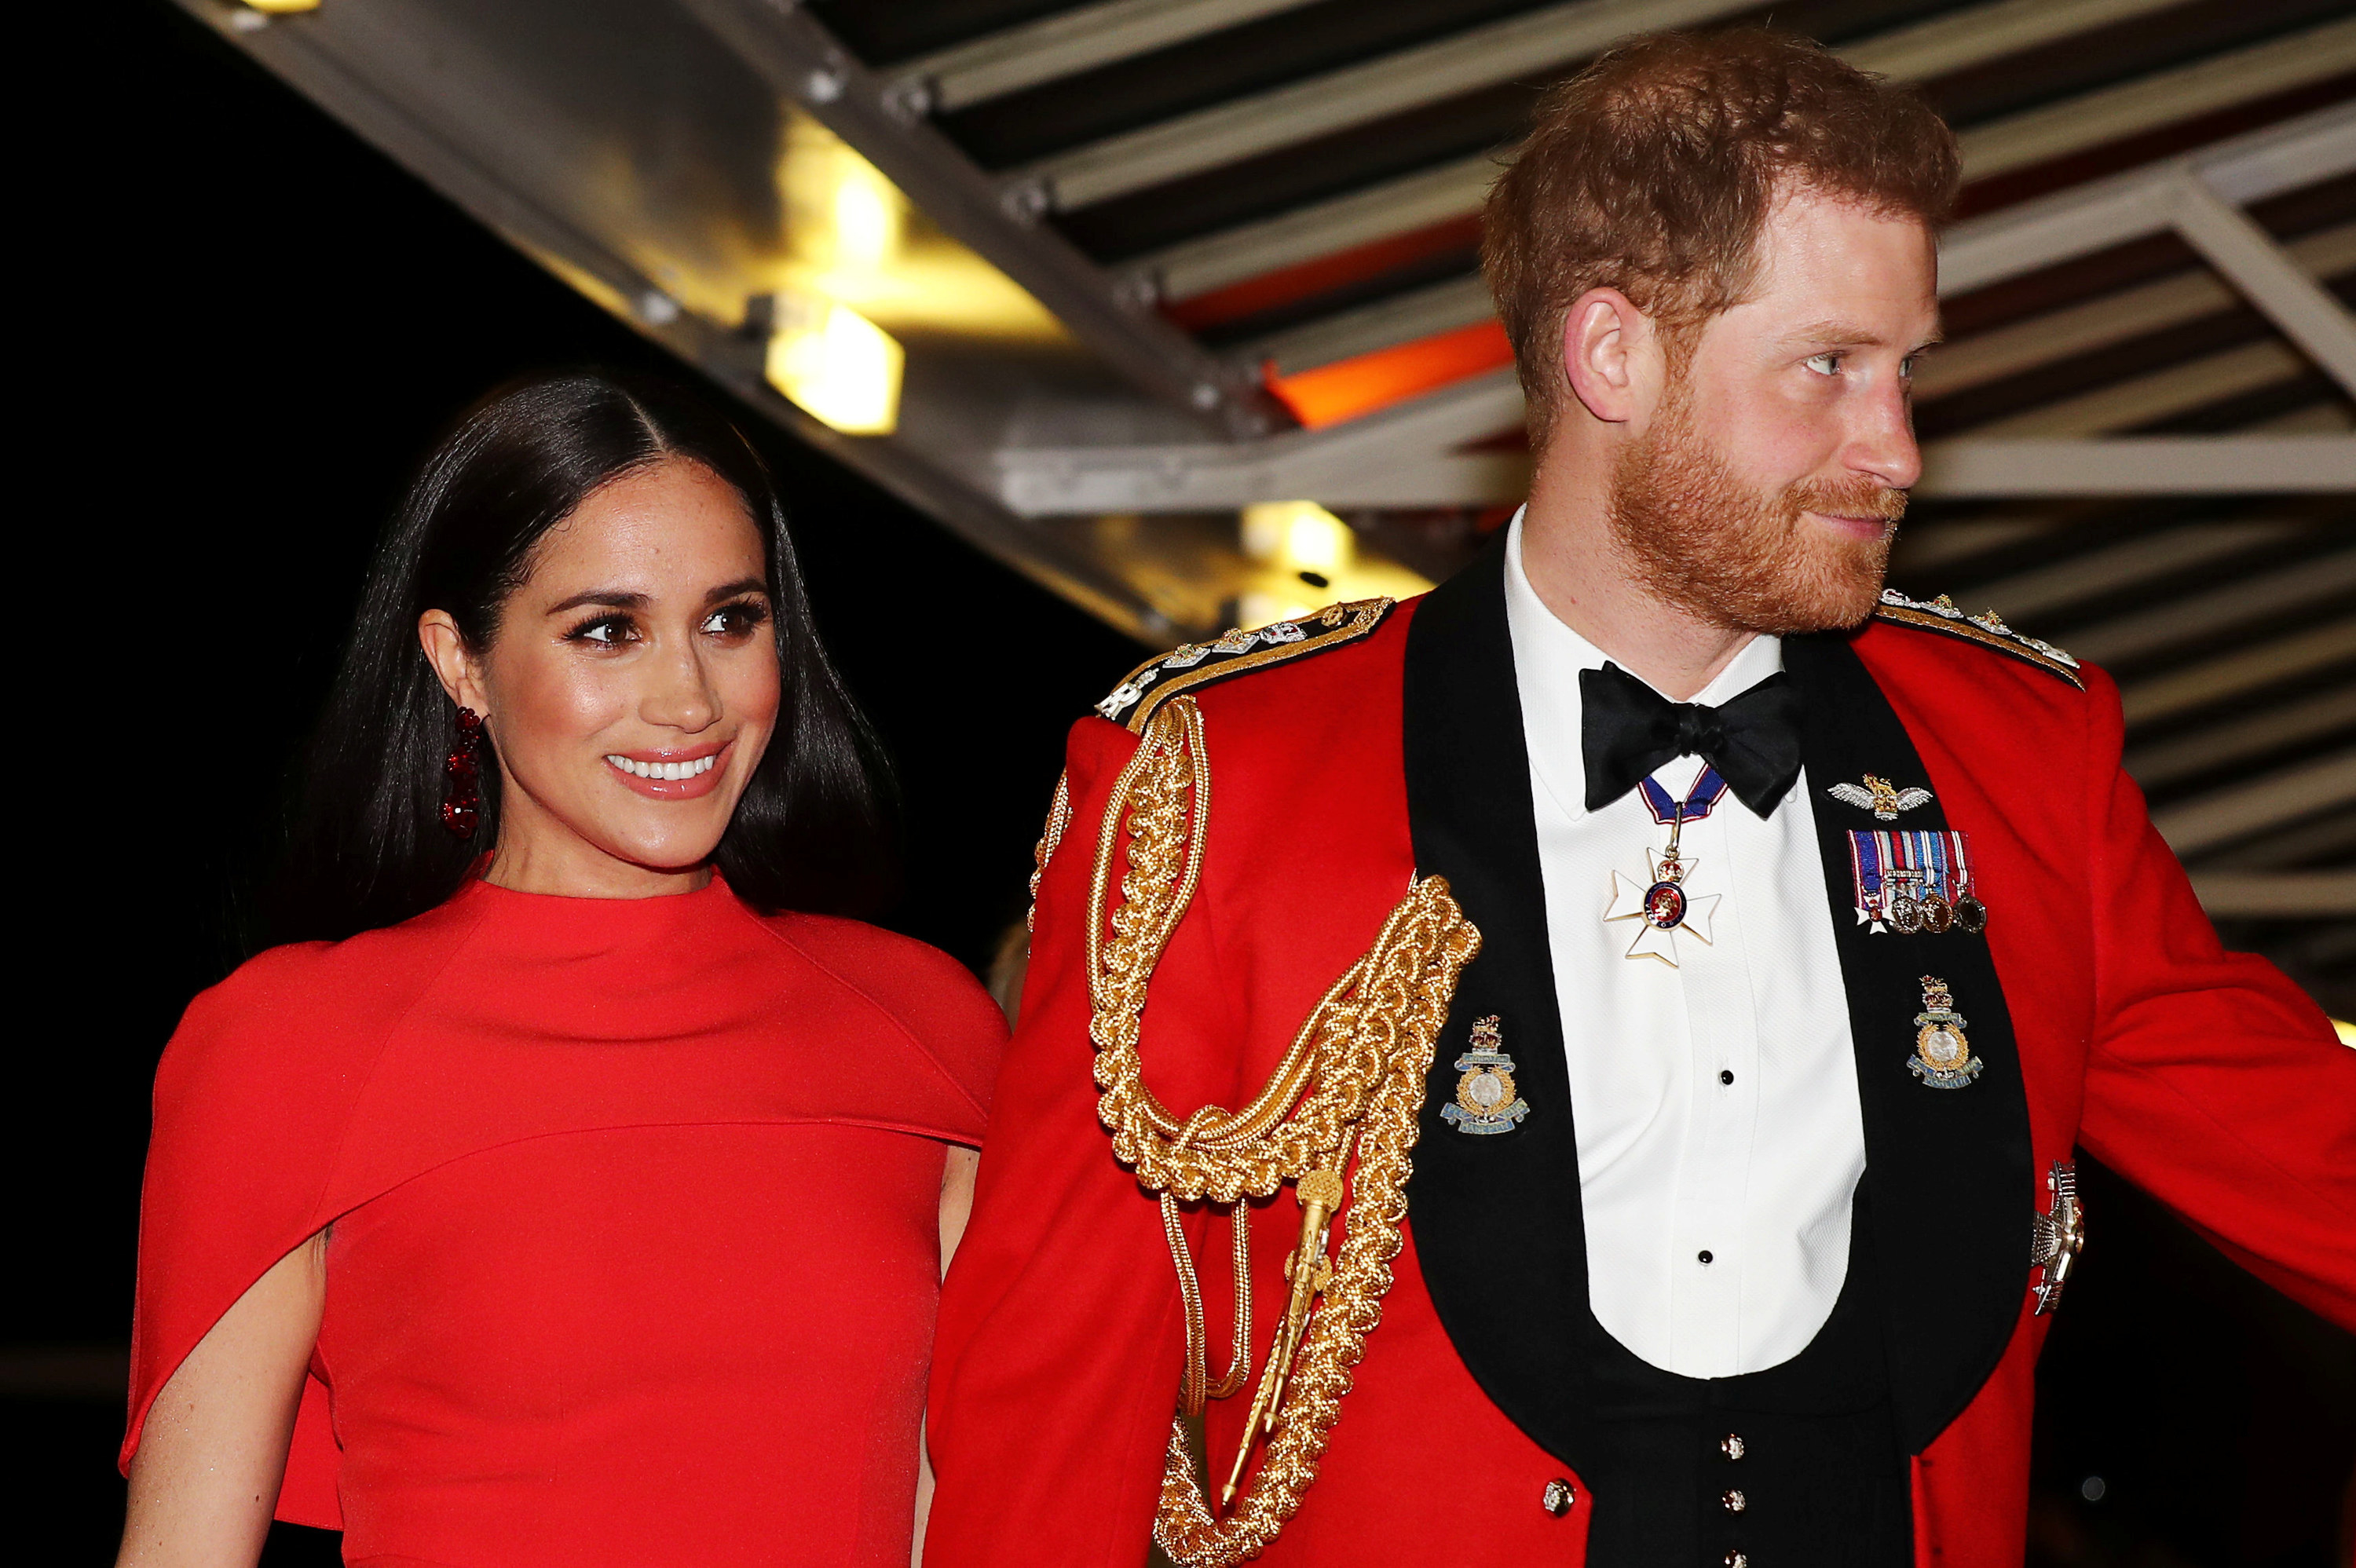 Meghan Markle and Prince Harry attend the Mountbatten Music Festival in London